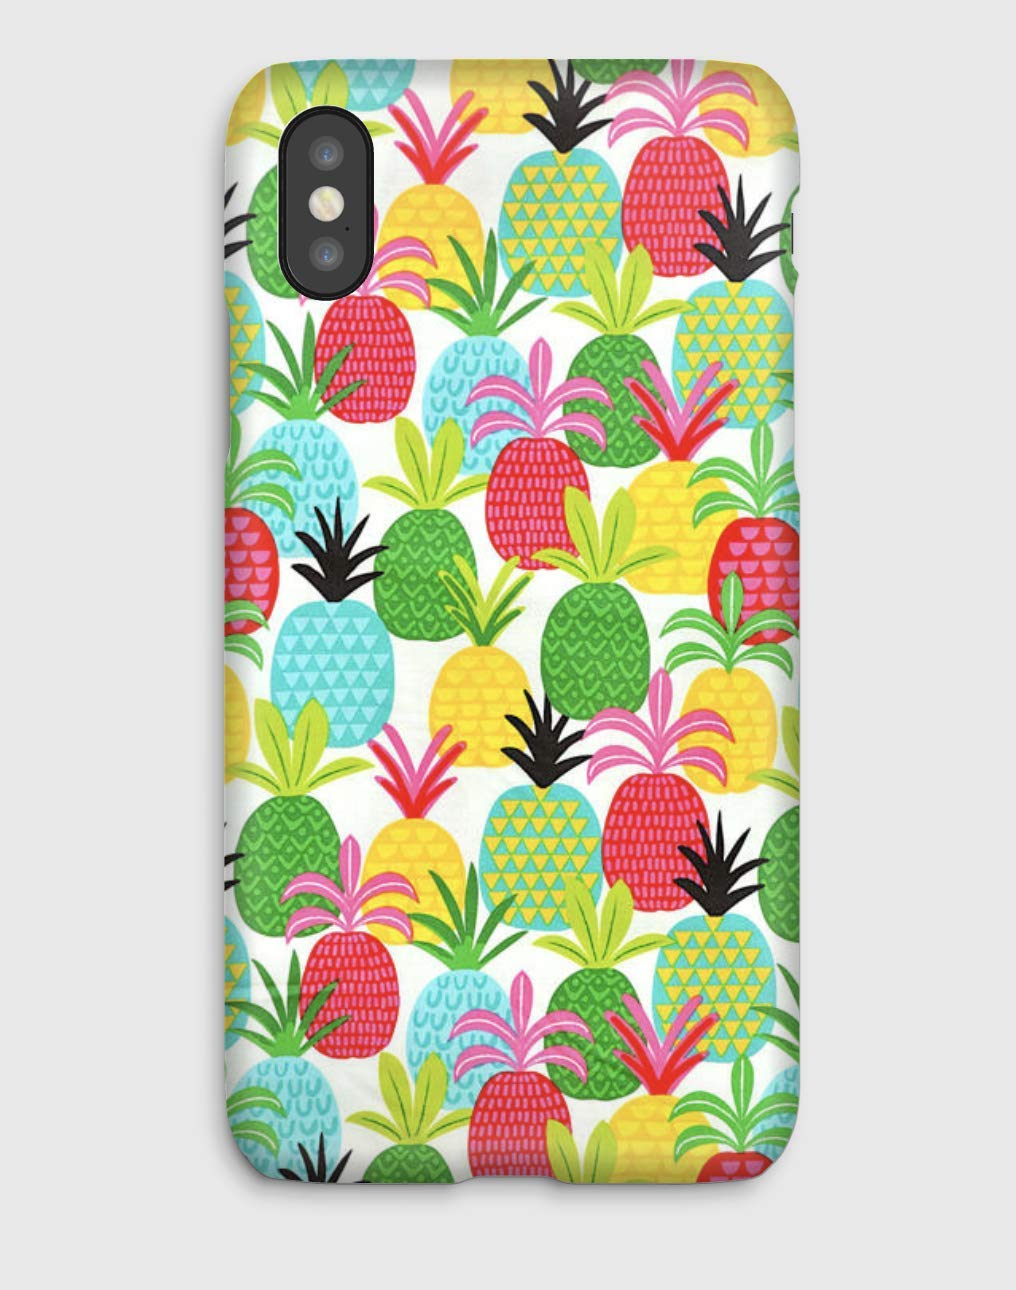 Ananas Fields Funda para el iPhone XS, XS Max, XR, X, 8, 8+, 7, 7+, 6S, 6, 6S+, 6+, 5C, 5, 5S, 5SE, 4S, 4,